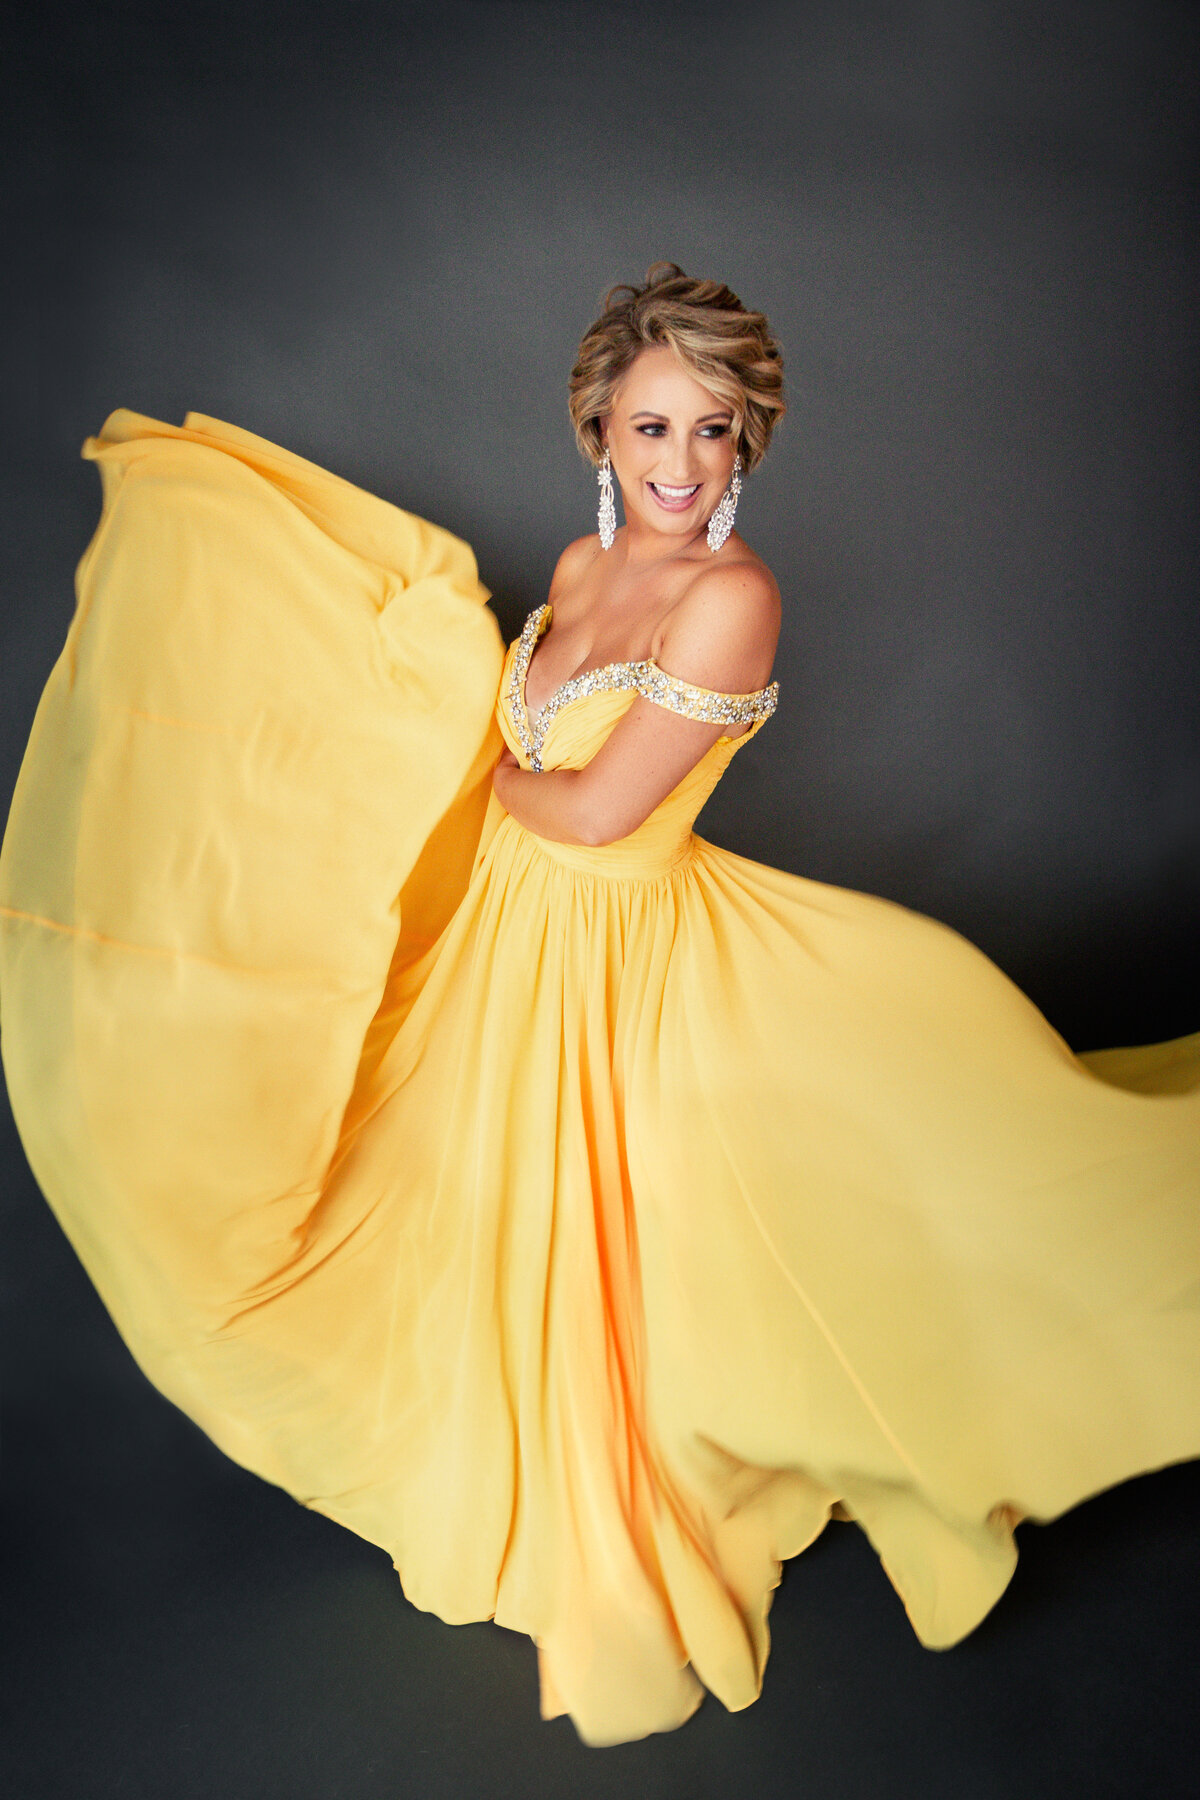 garland texas glamorous beauty portrait photography for woman laughing in yellow dress